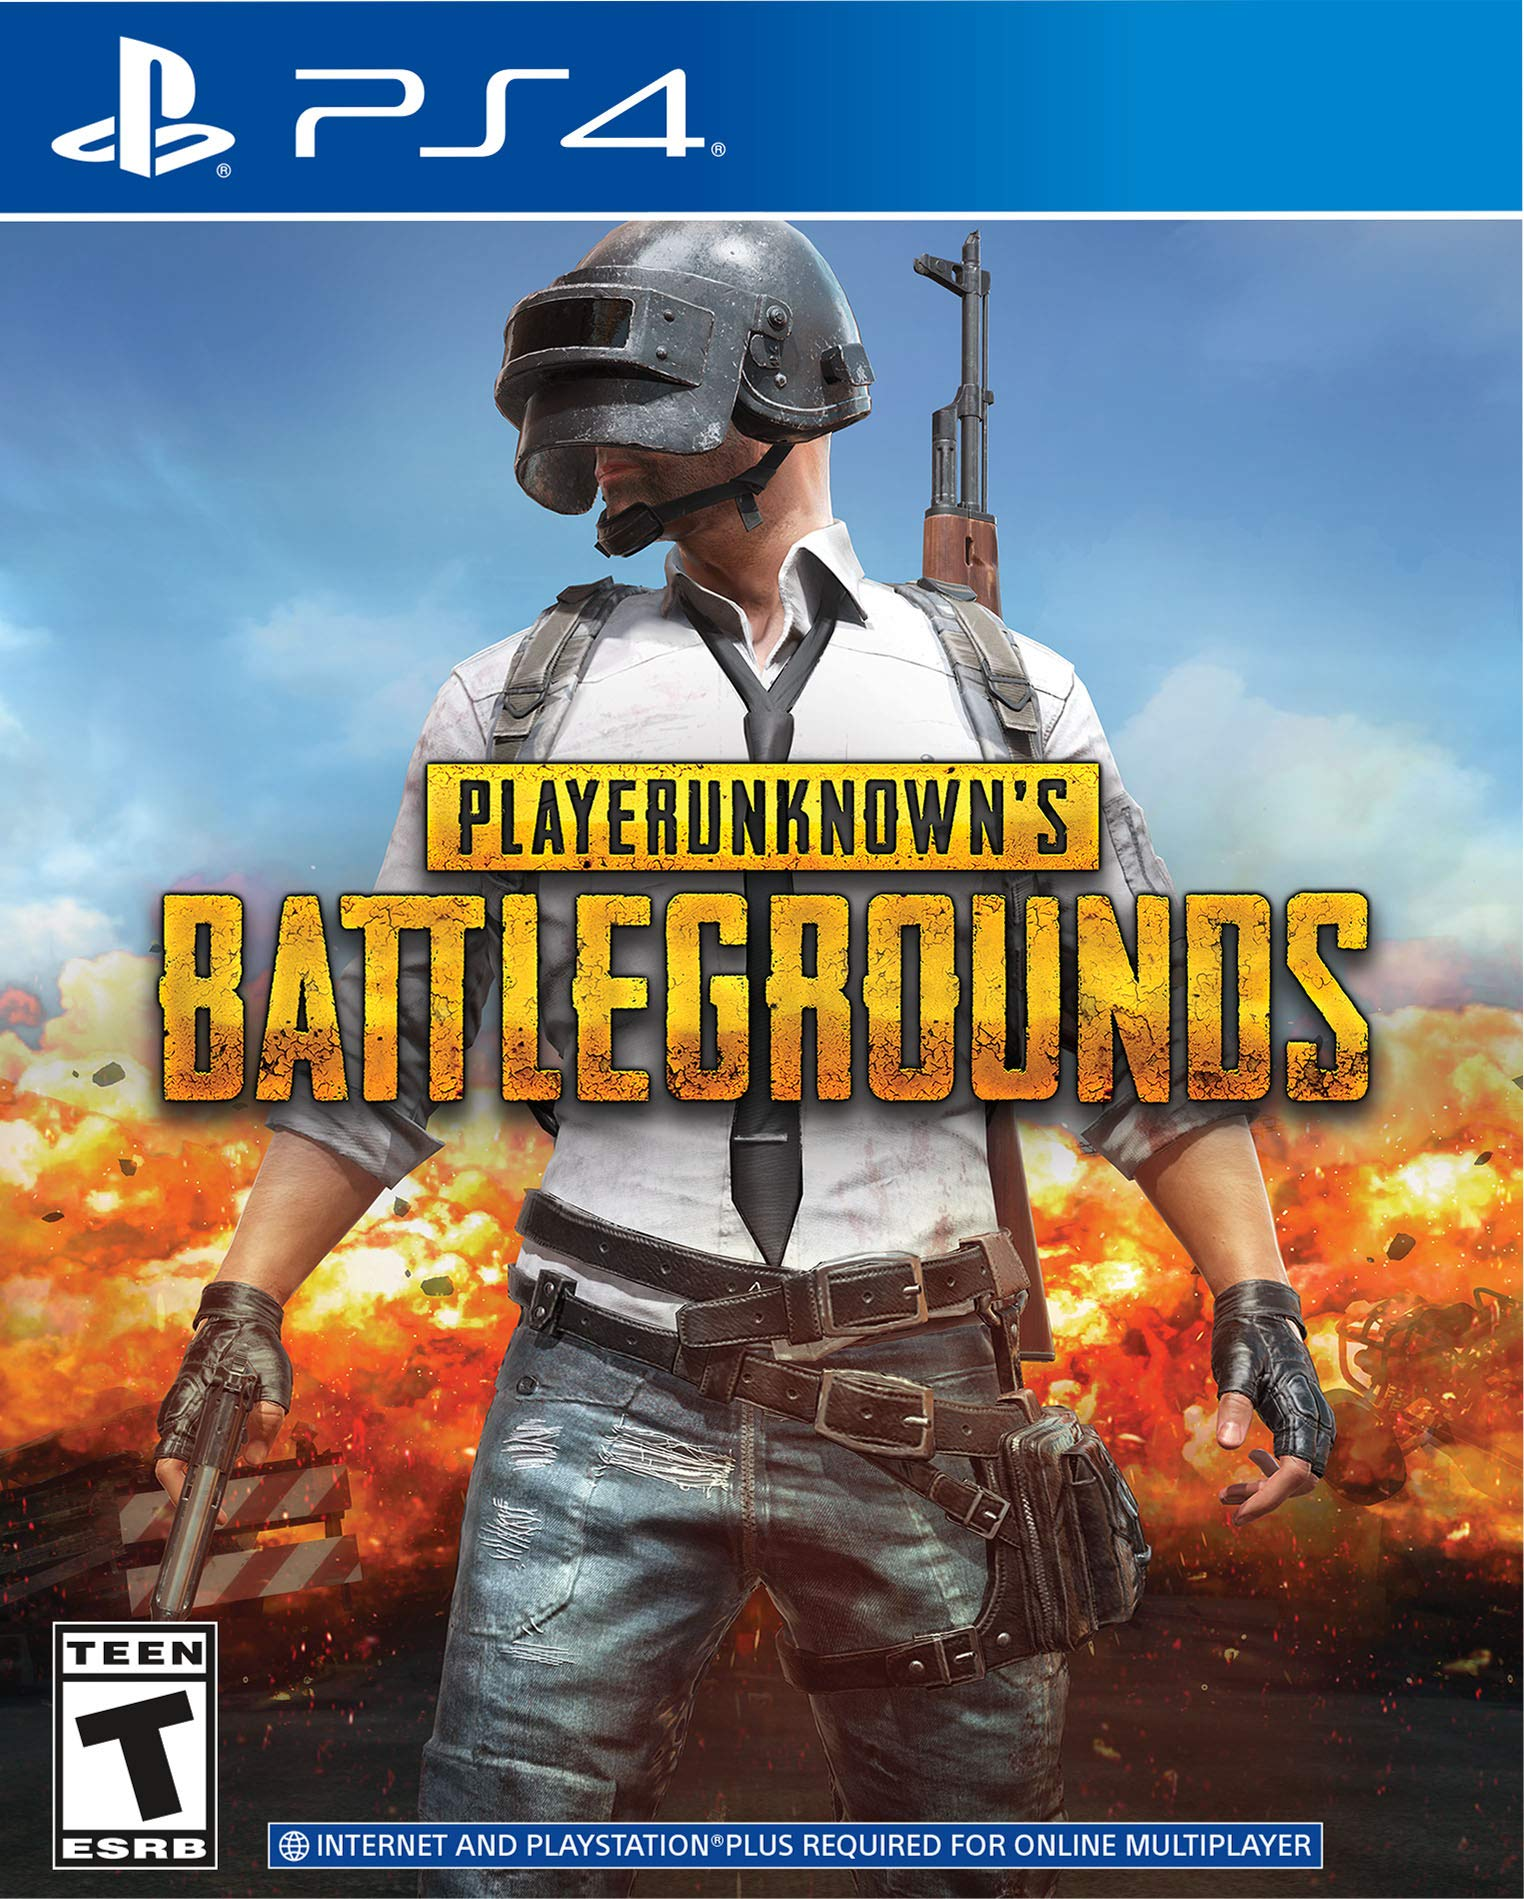 Playerunknowns Battlegrounds (PUBG) - PlayStation 4 Játékok